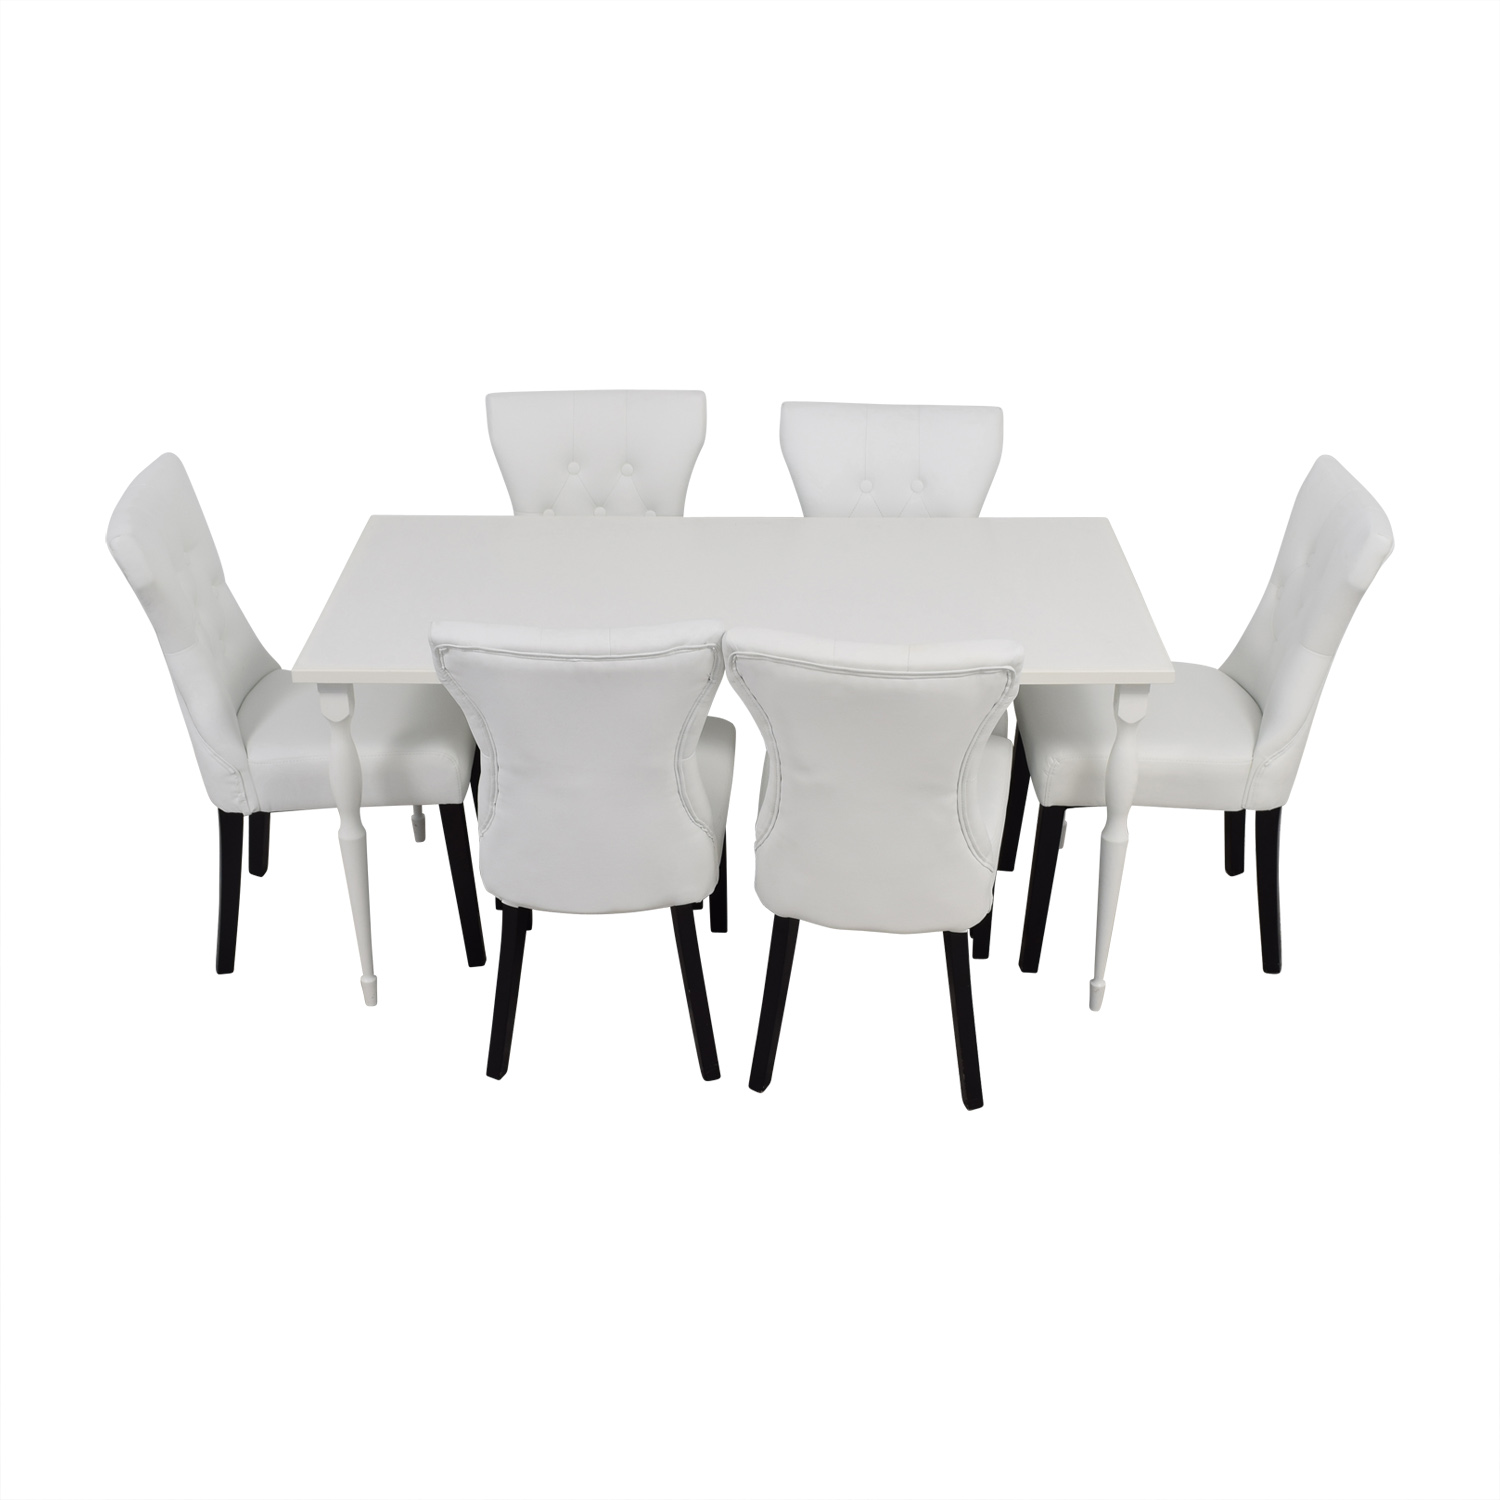 IKEA IKEA Dining Table and Chairs nj